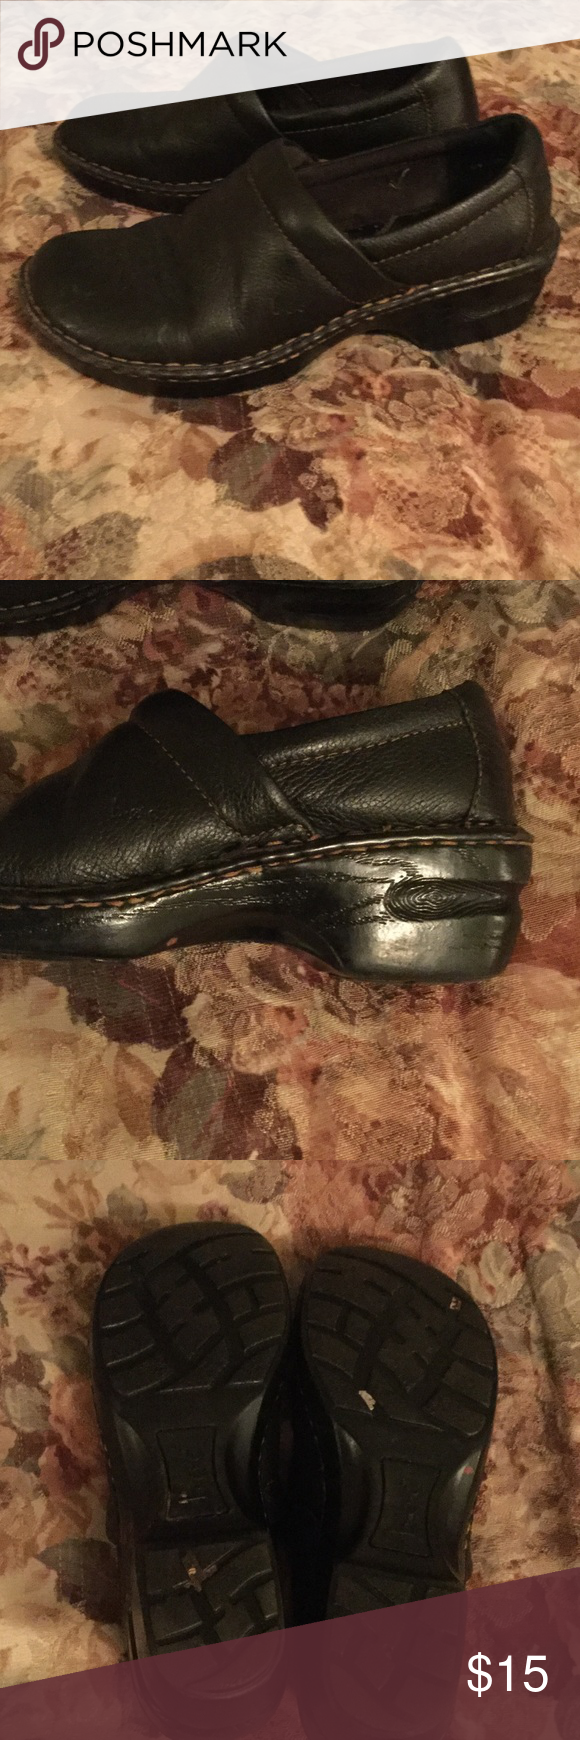 ➰Black Born Clogs➰ Great condition Born Clogs. Almost brand new. Detailed design on the heel/lift. Tiny scuffs on the toes. So comfy! Great alternative for heels!!👠 Born Shoes Mules & Clogs